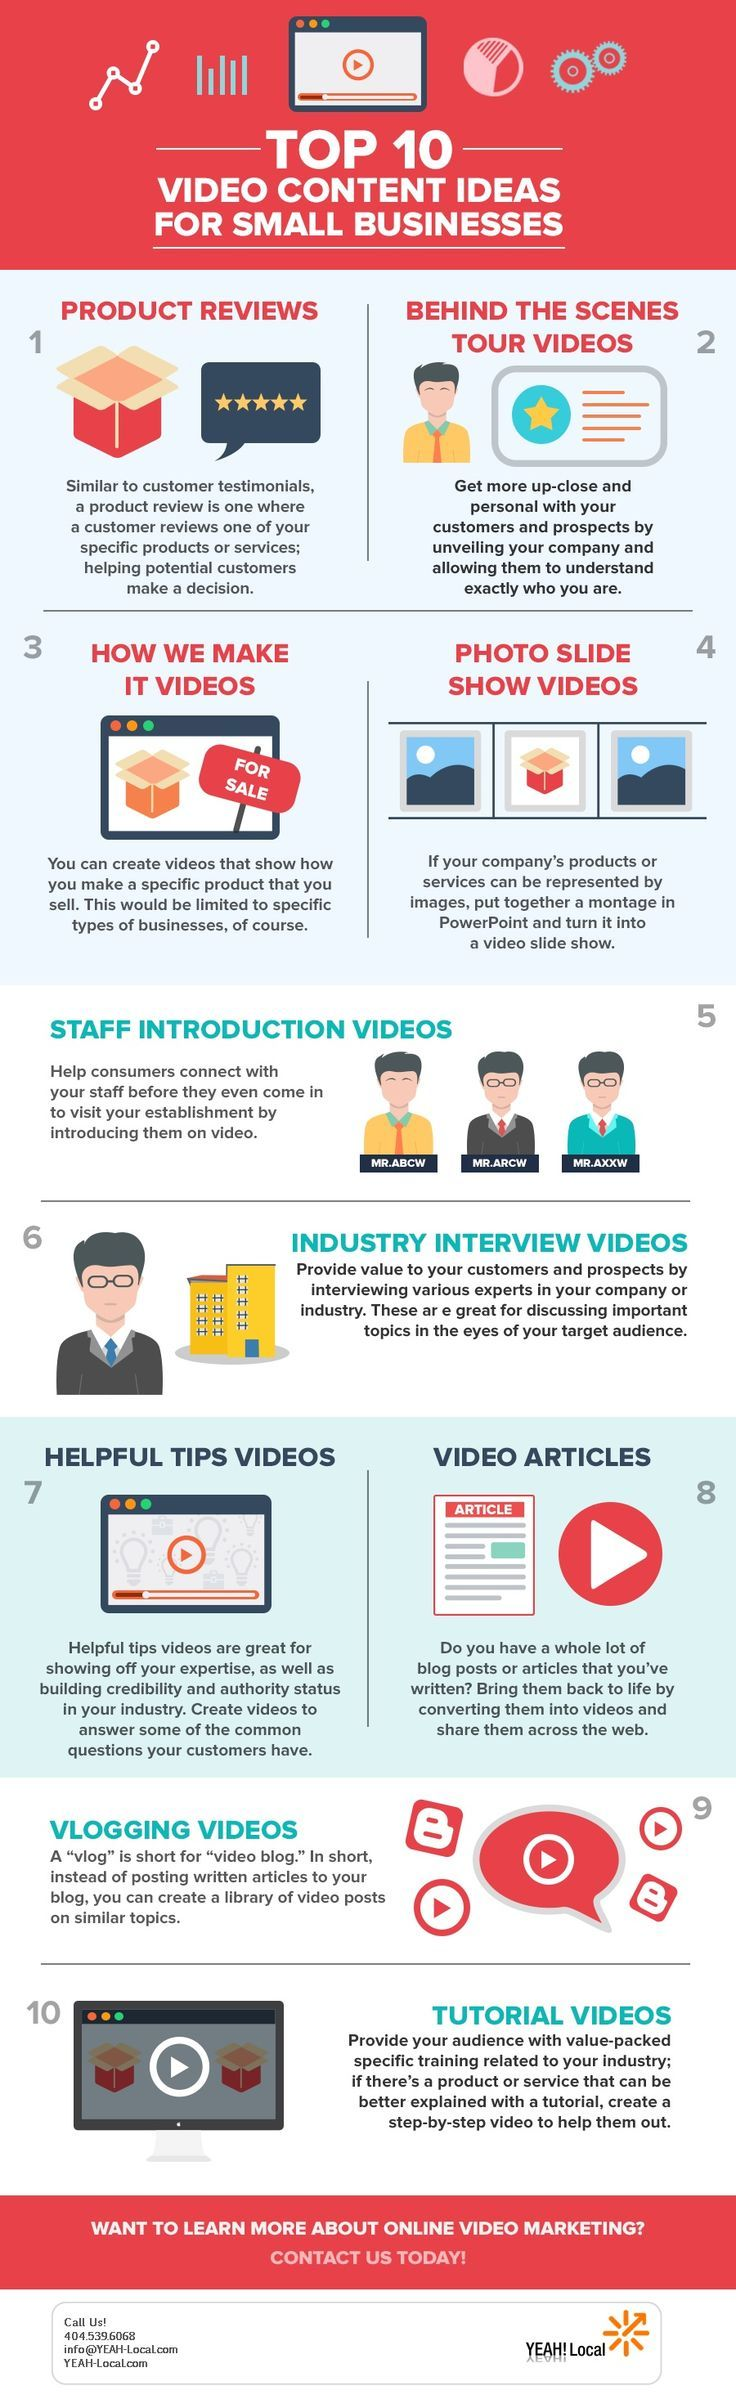 Top 10 Video Marketing Content Ideas for Small Businesses  Read more at: yeah-local.com/...